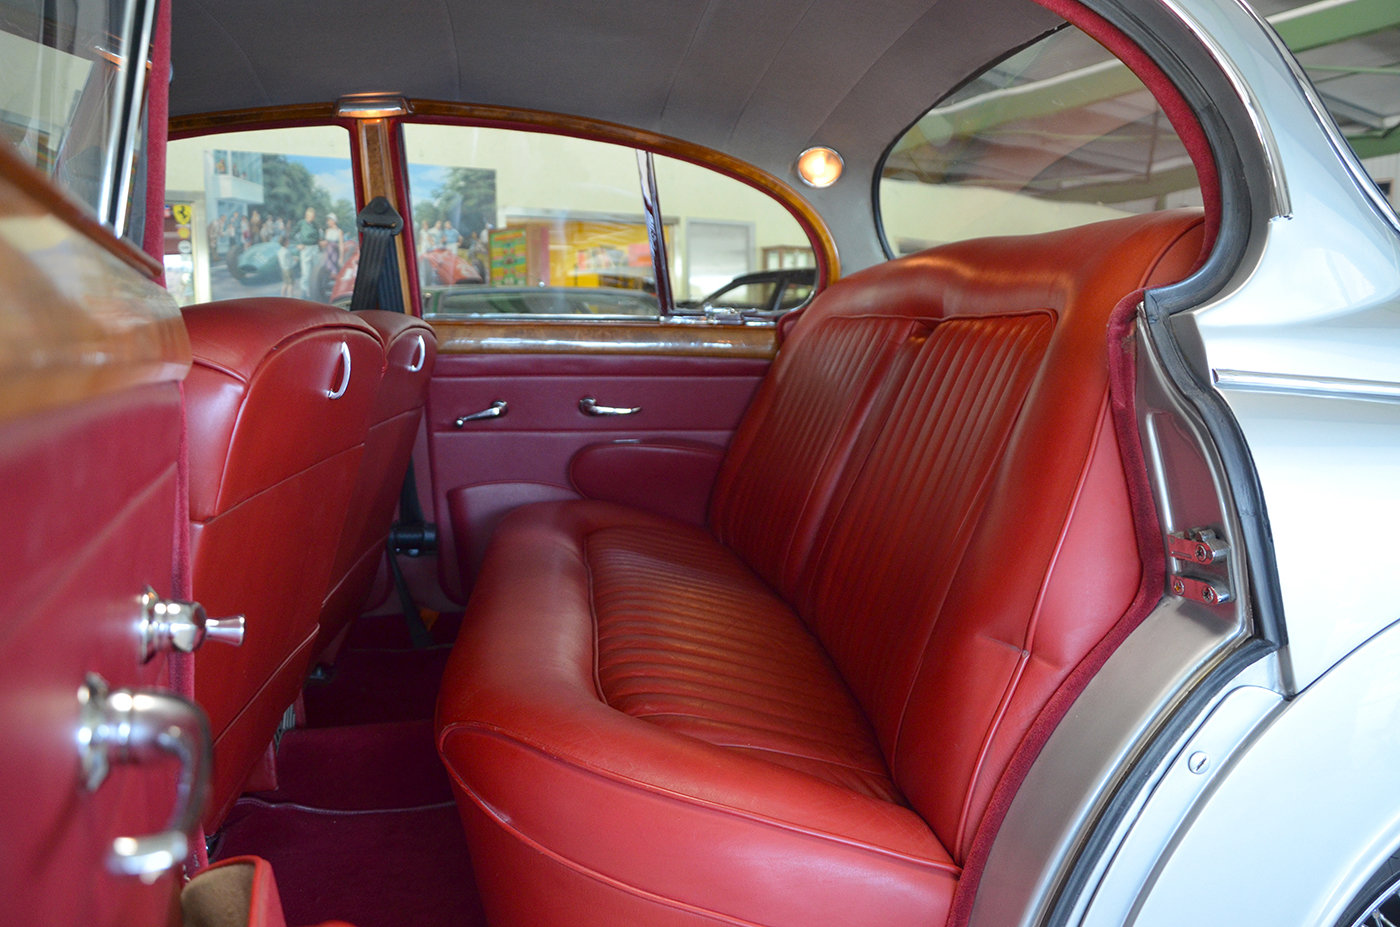 1960 Jaguar MK II 3.8 L - LHD - Top condition For Sale (picture 4 of 6)